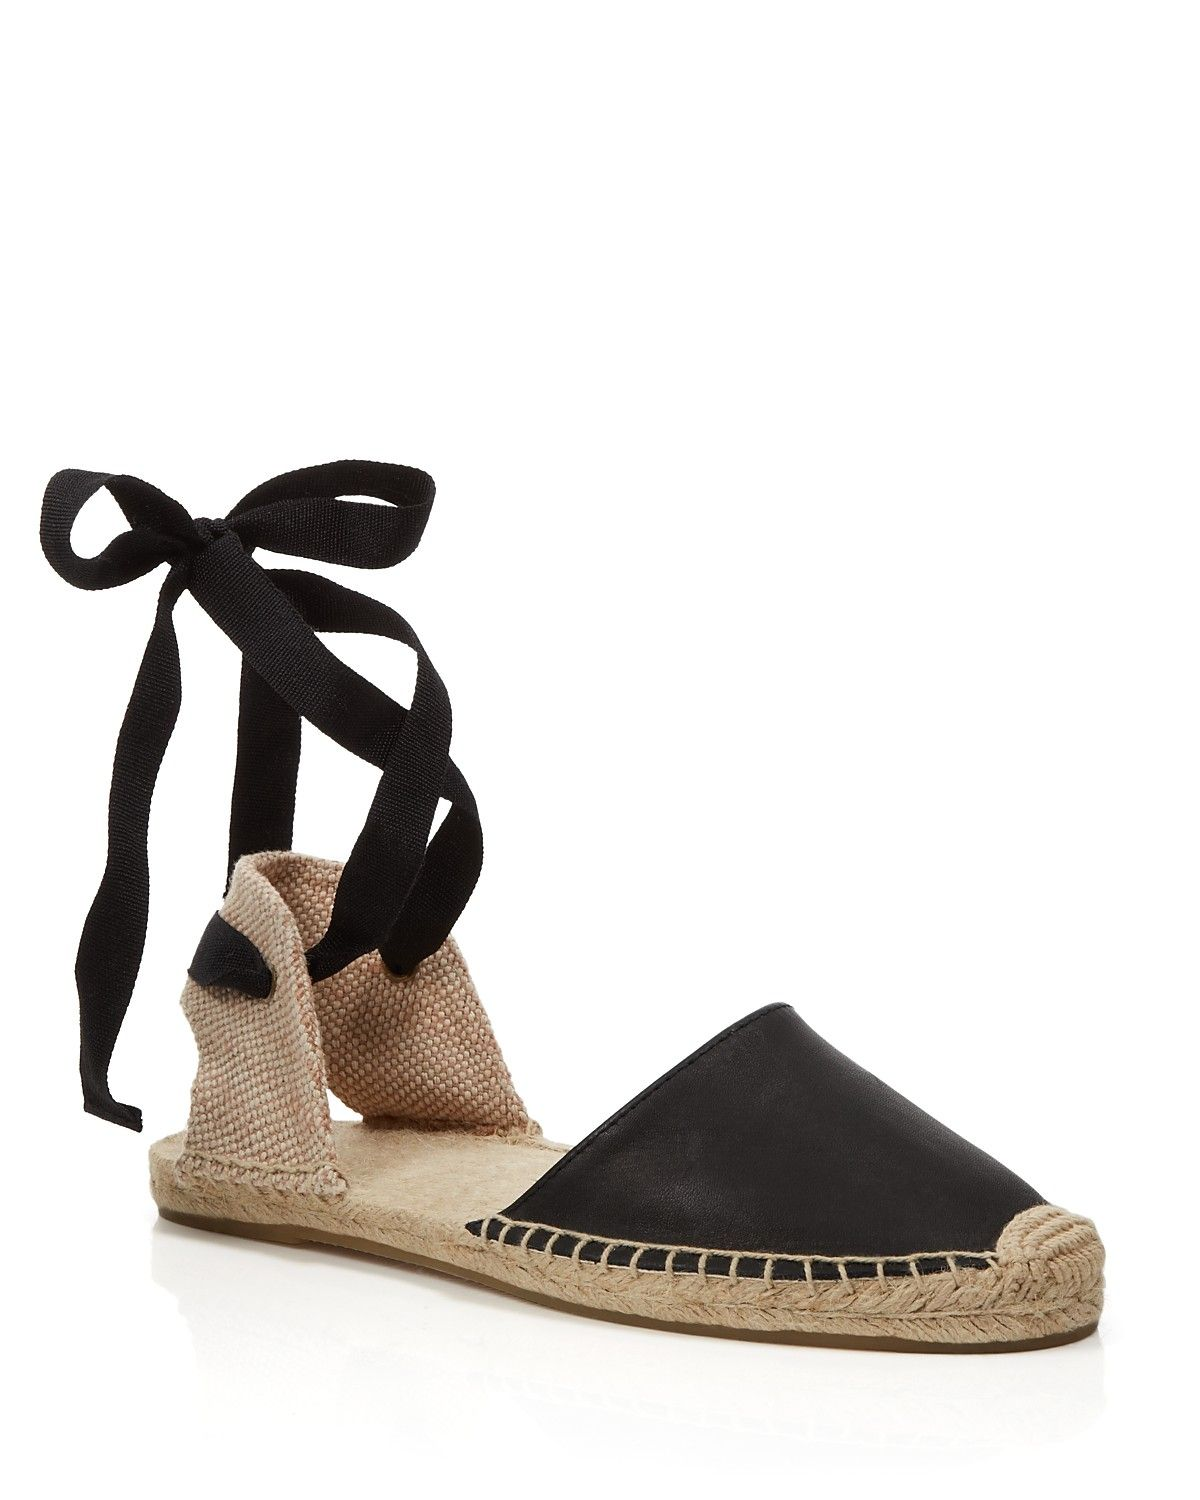 62ed7979380 Soludos Espadrille Flat Sandals - Classic Ankle Wrap ...